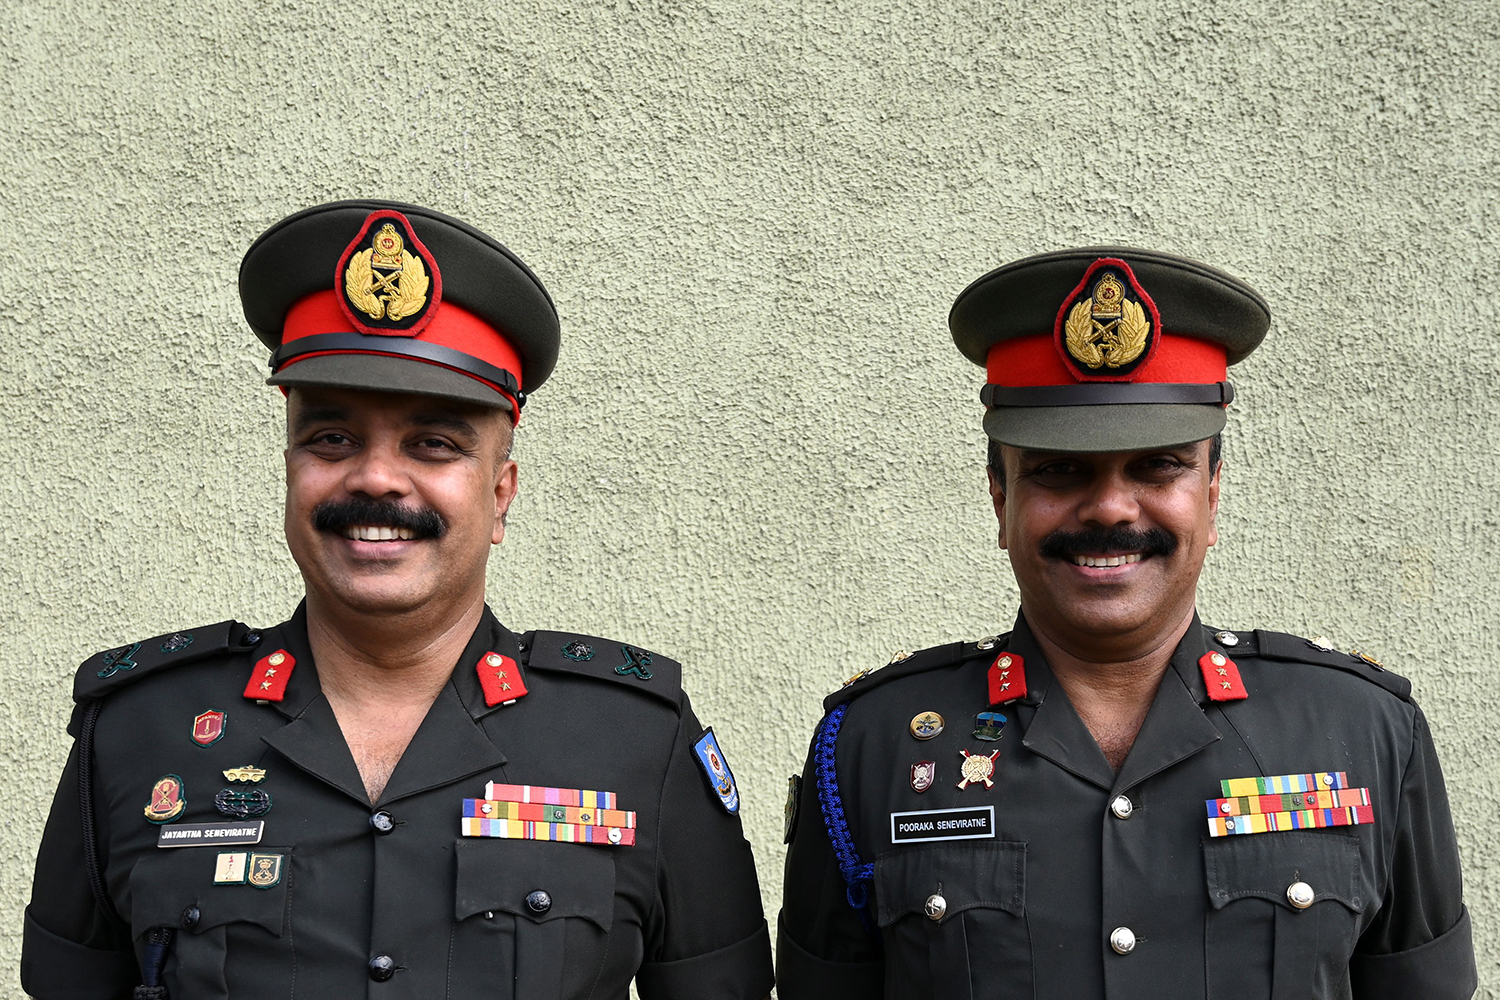 Sri Lankan Army Gens. Jayantha and Pooraka Seneviratne, pose for a picture during an attempt to break the world record for the biggest gathering of twins on Jan. 20 in Colombo, Sri Lanka.